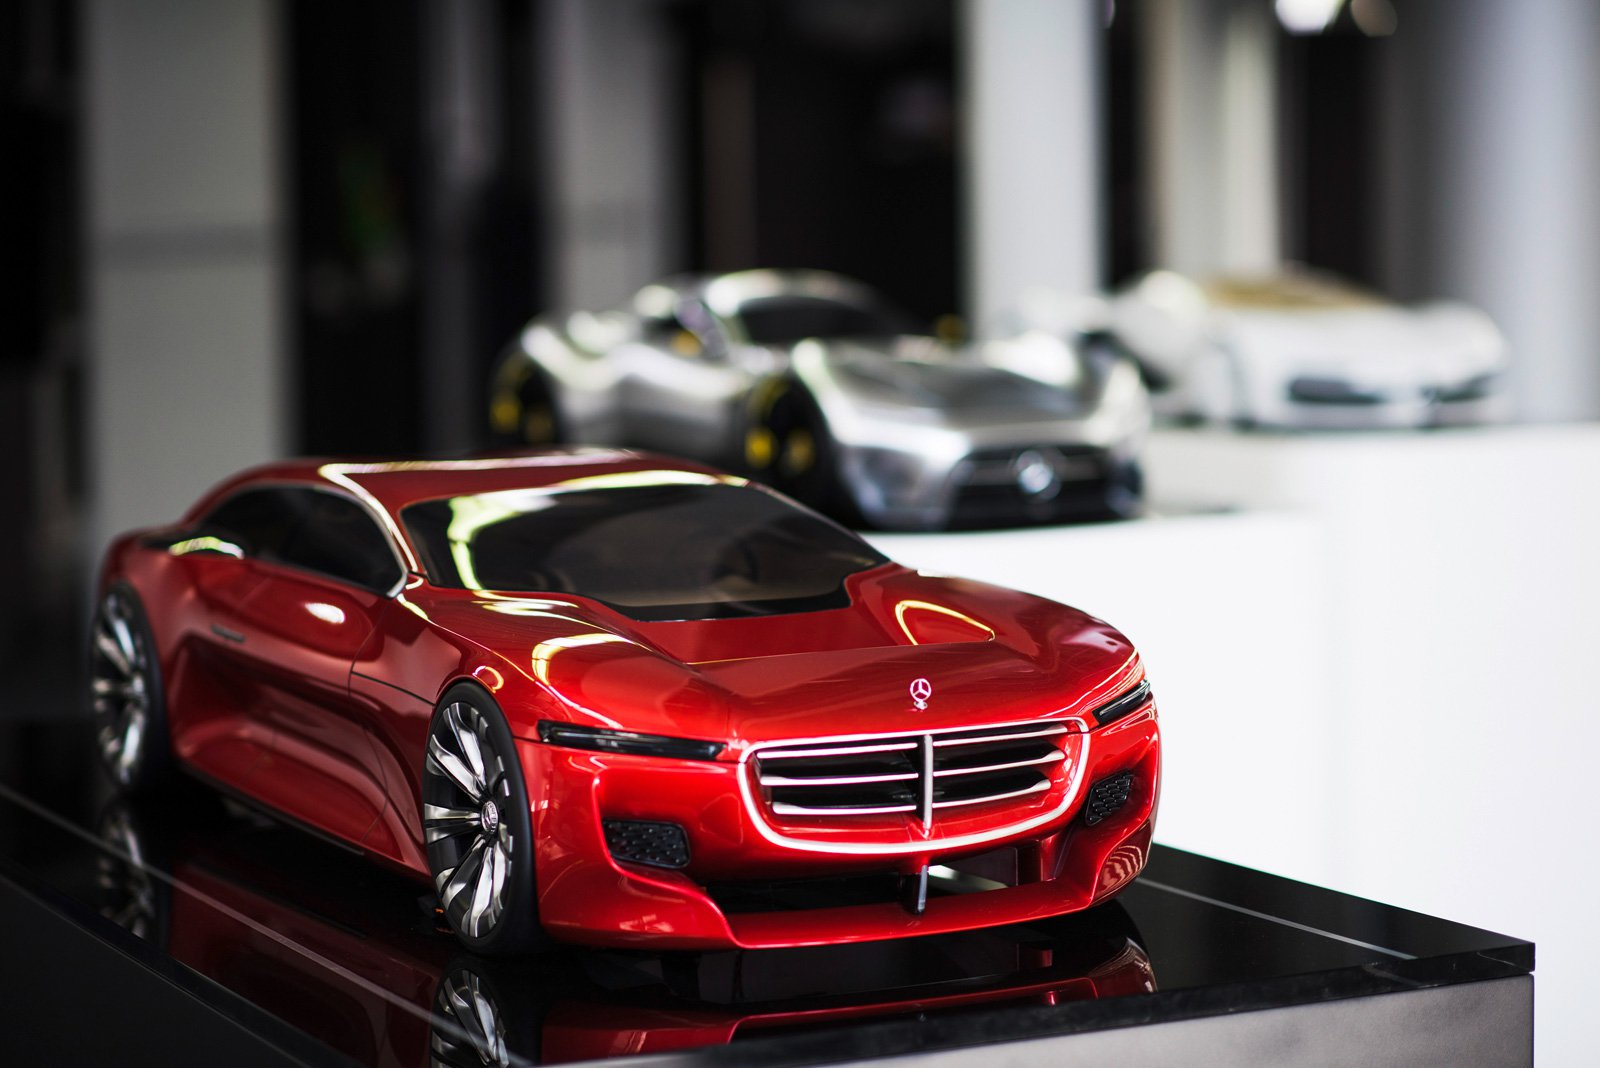 These Magnificient Mercedes Concepts Confuse and Delight